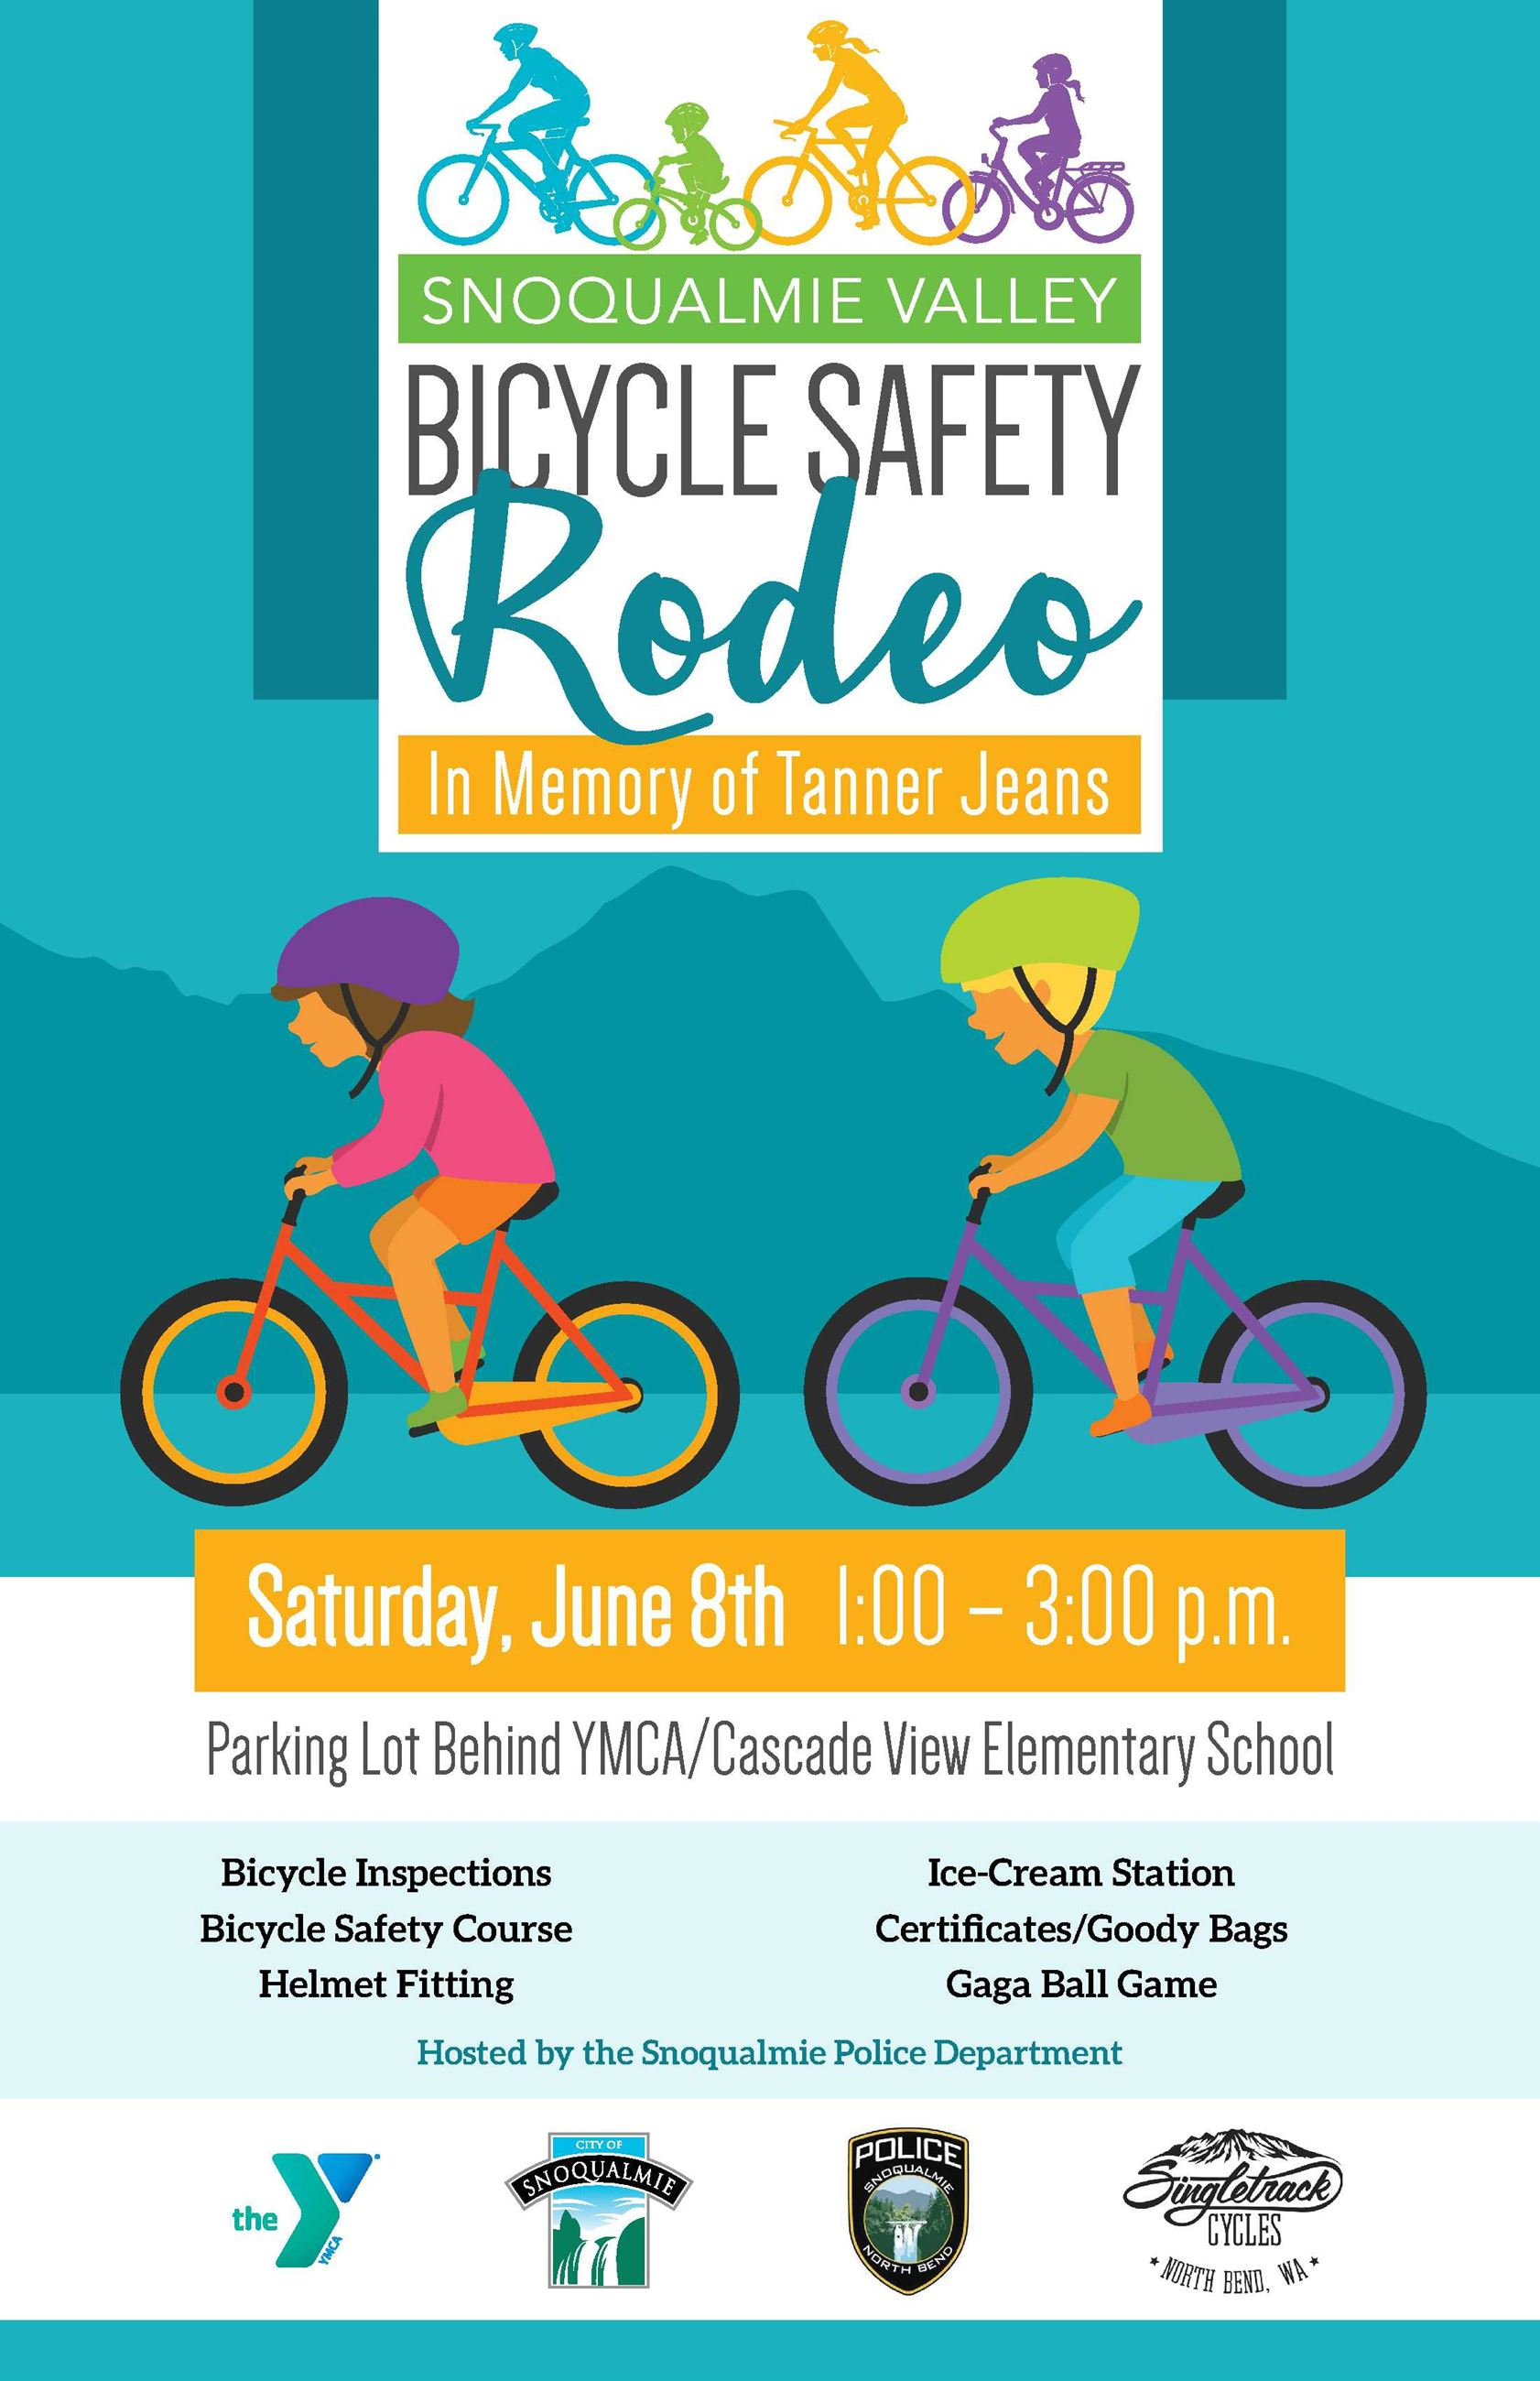 SV Bicycle Safety Rodeo 2019